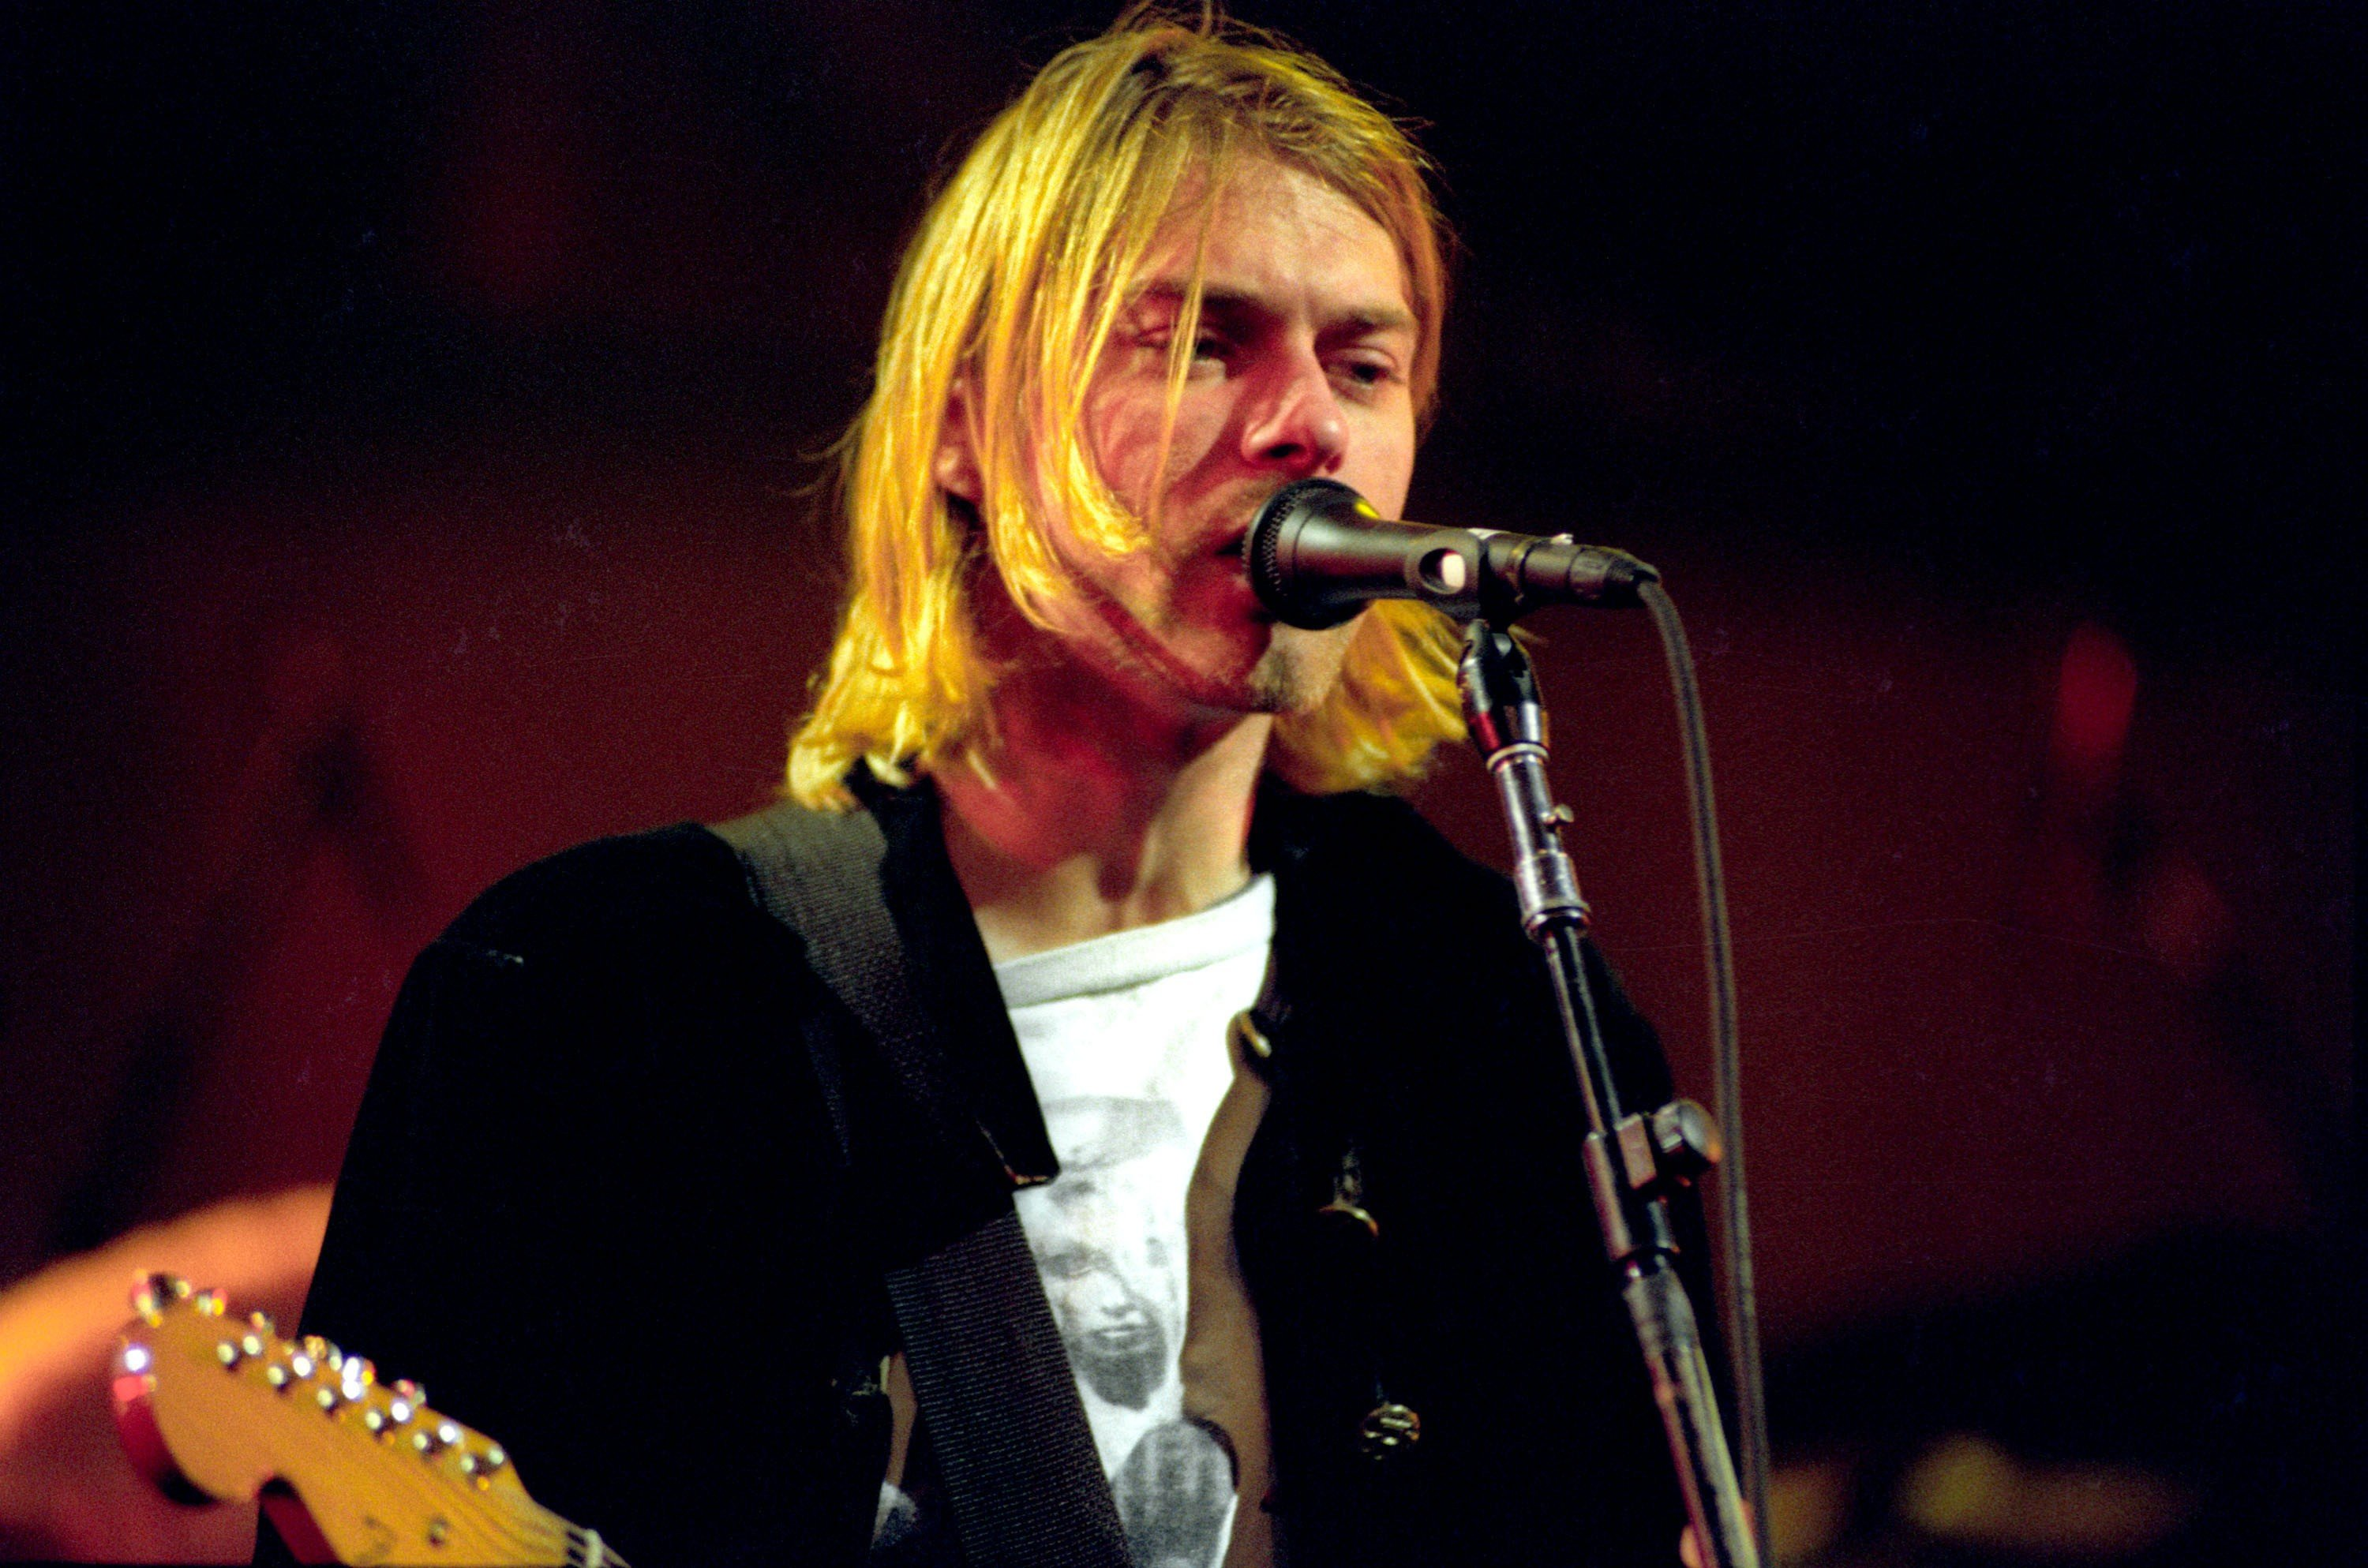 MTV Live and Loud: Nirvana Performs Live - December 1993